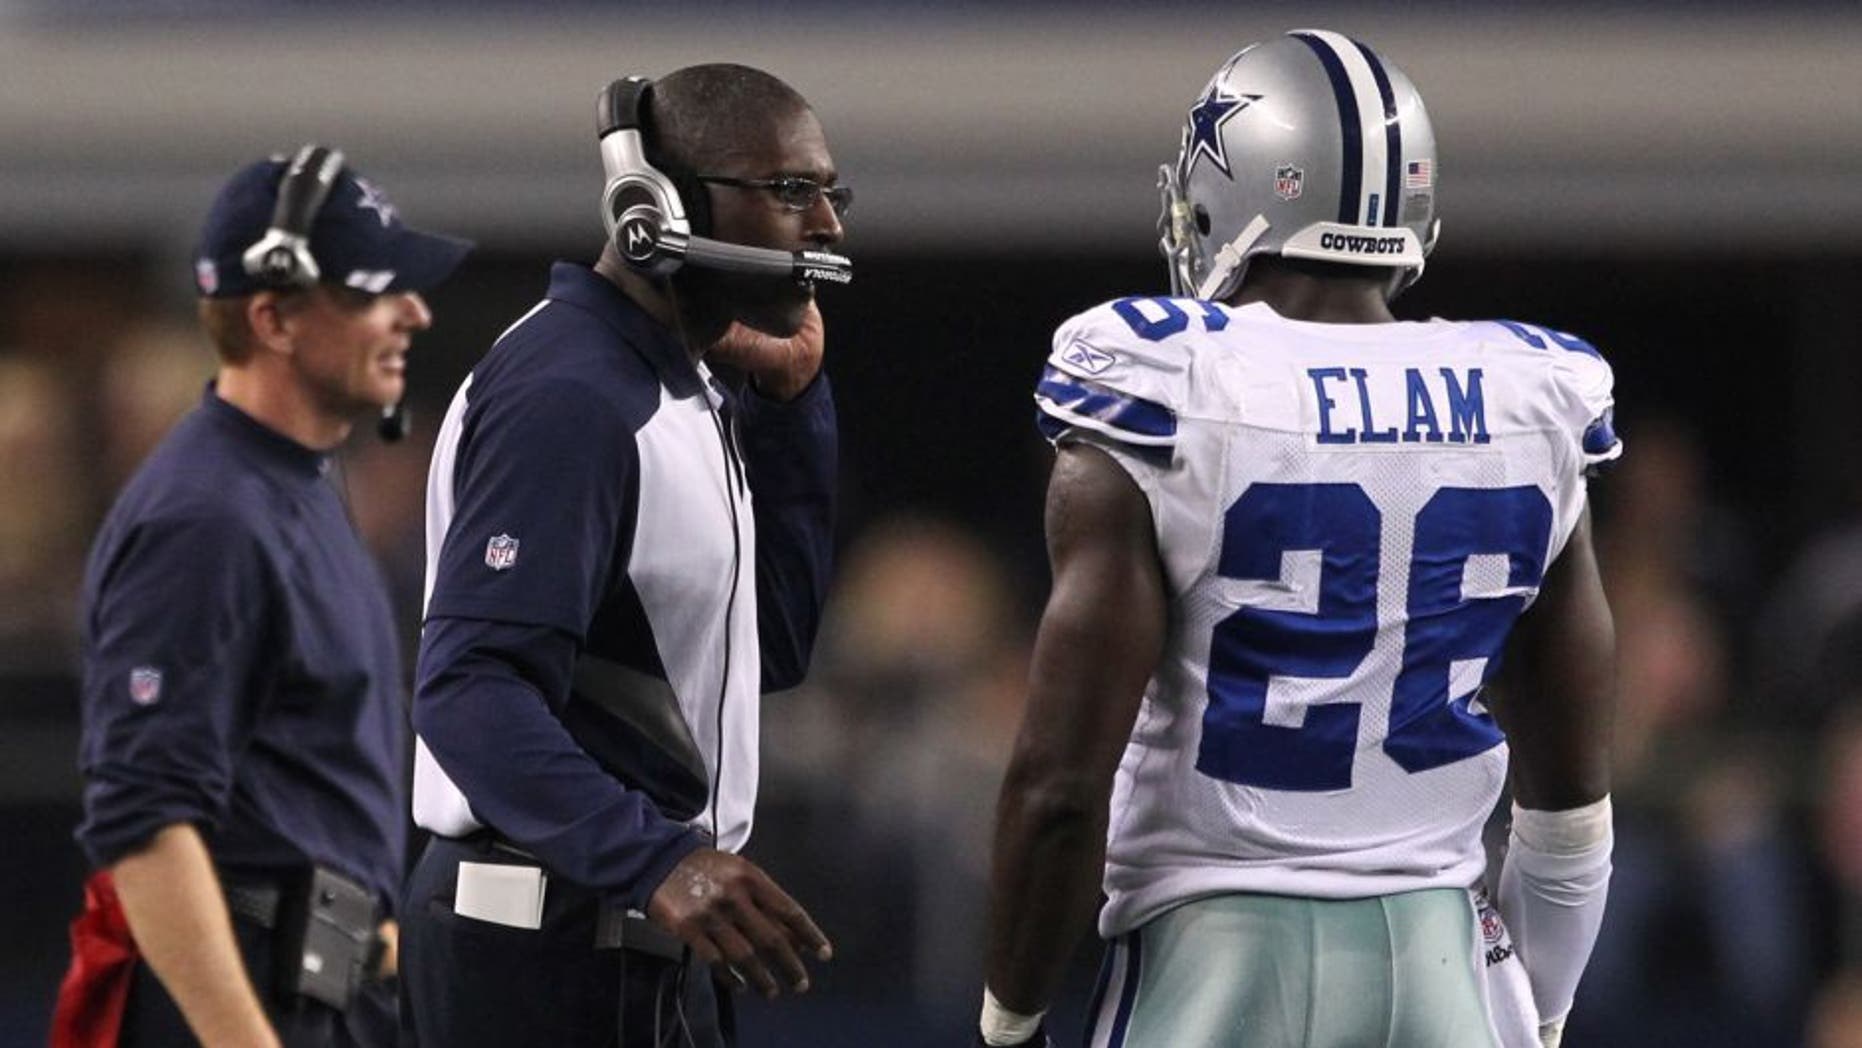 Dec 11, 2011; Dallas, TX, USA; Dallas Cowboys secondary coach Brett Maxie talks with safety Abram Elam (26) with head coach Jason Garrett in the background during a break in the action against the New York Giants at Cowboys Stadium. Mandatory Credit: Matthew Emmons-USA TODAY Sports